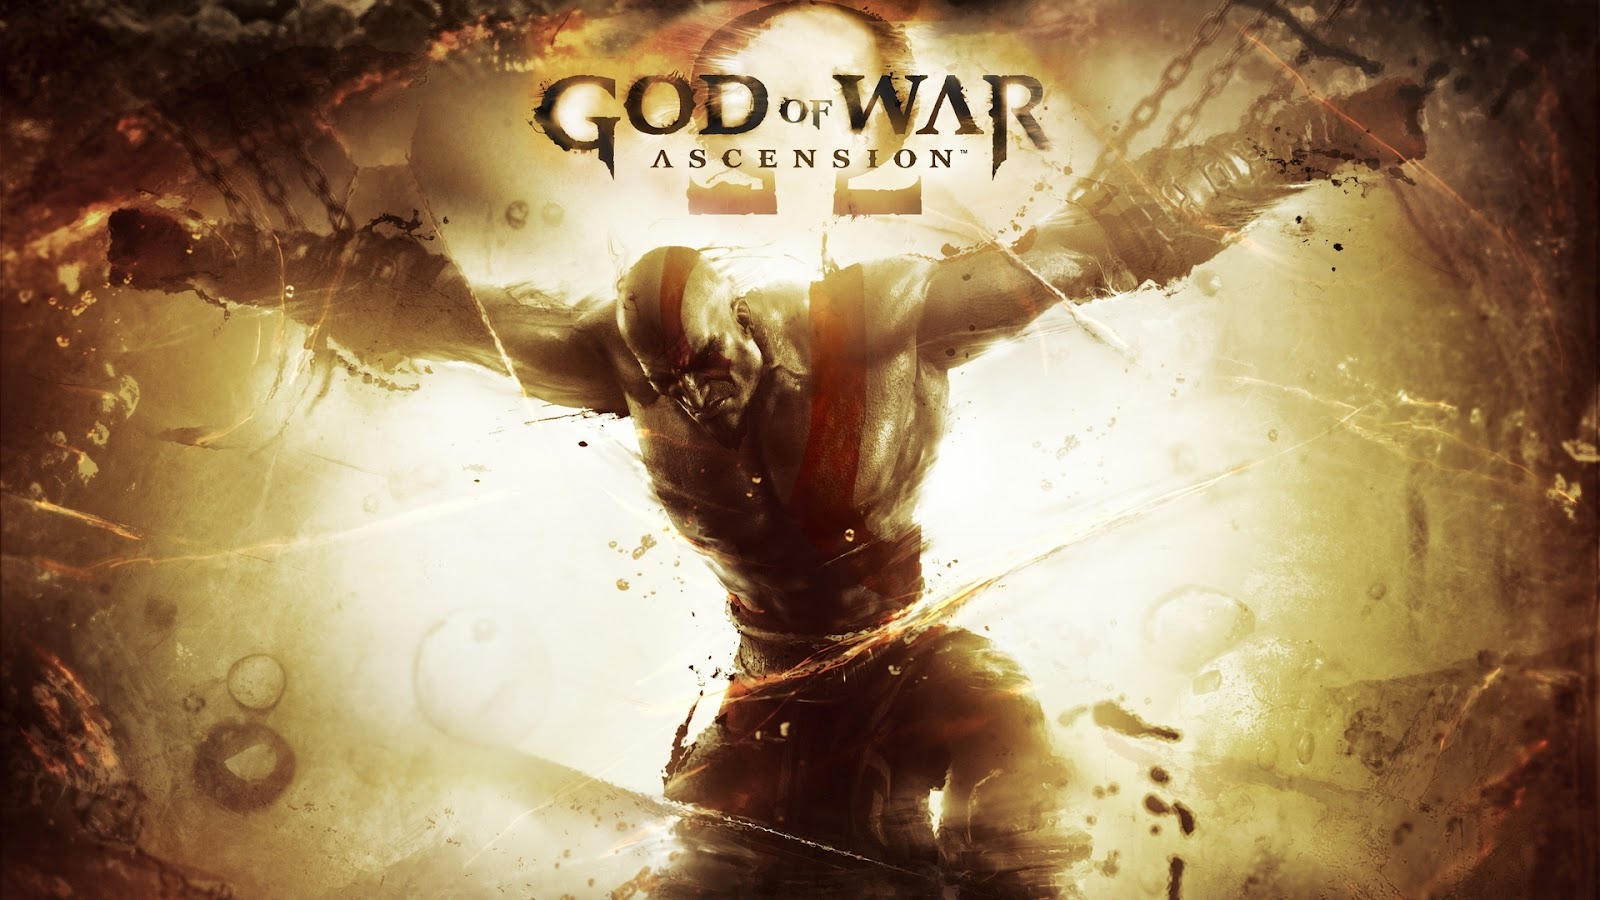 http://1.bp.blogspot.com/-i7cryG1-QXs/UBlz-z_ny1I/AAAAAAAANqE/sfEXbKfBa2Y/s1600/Kratos_God_of_War_Ascension_Wallpaper.jpg